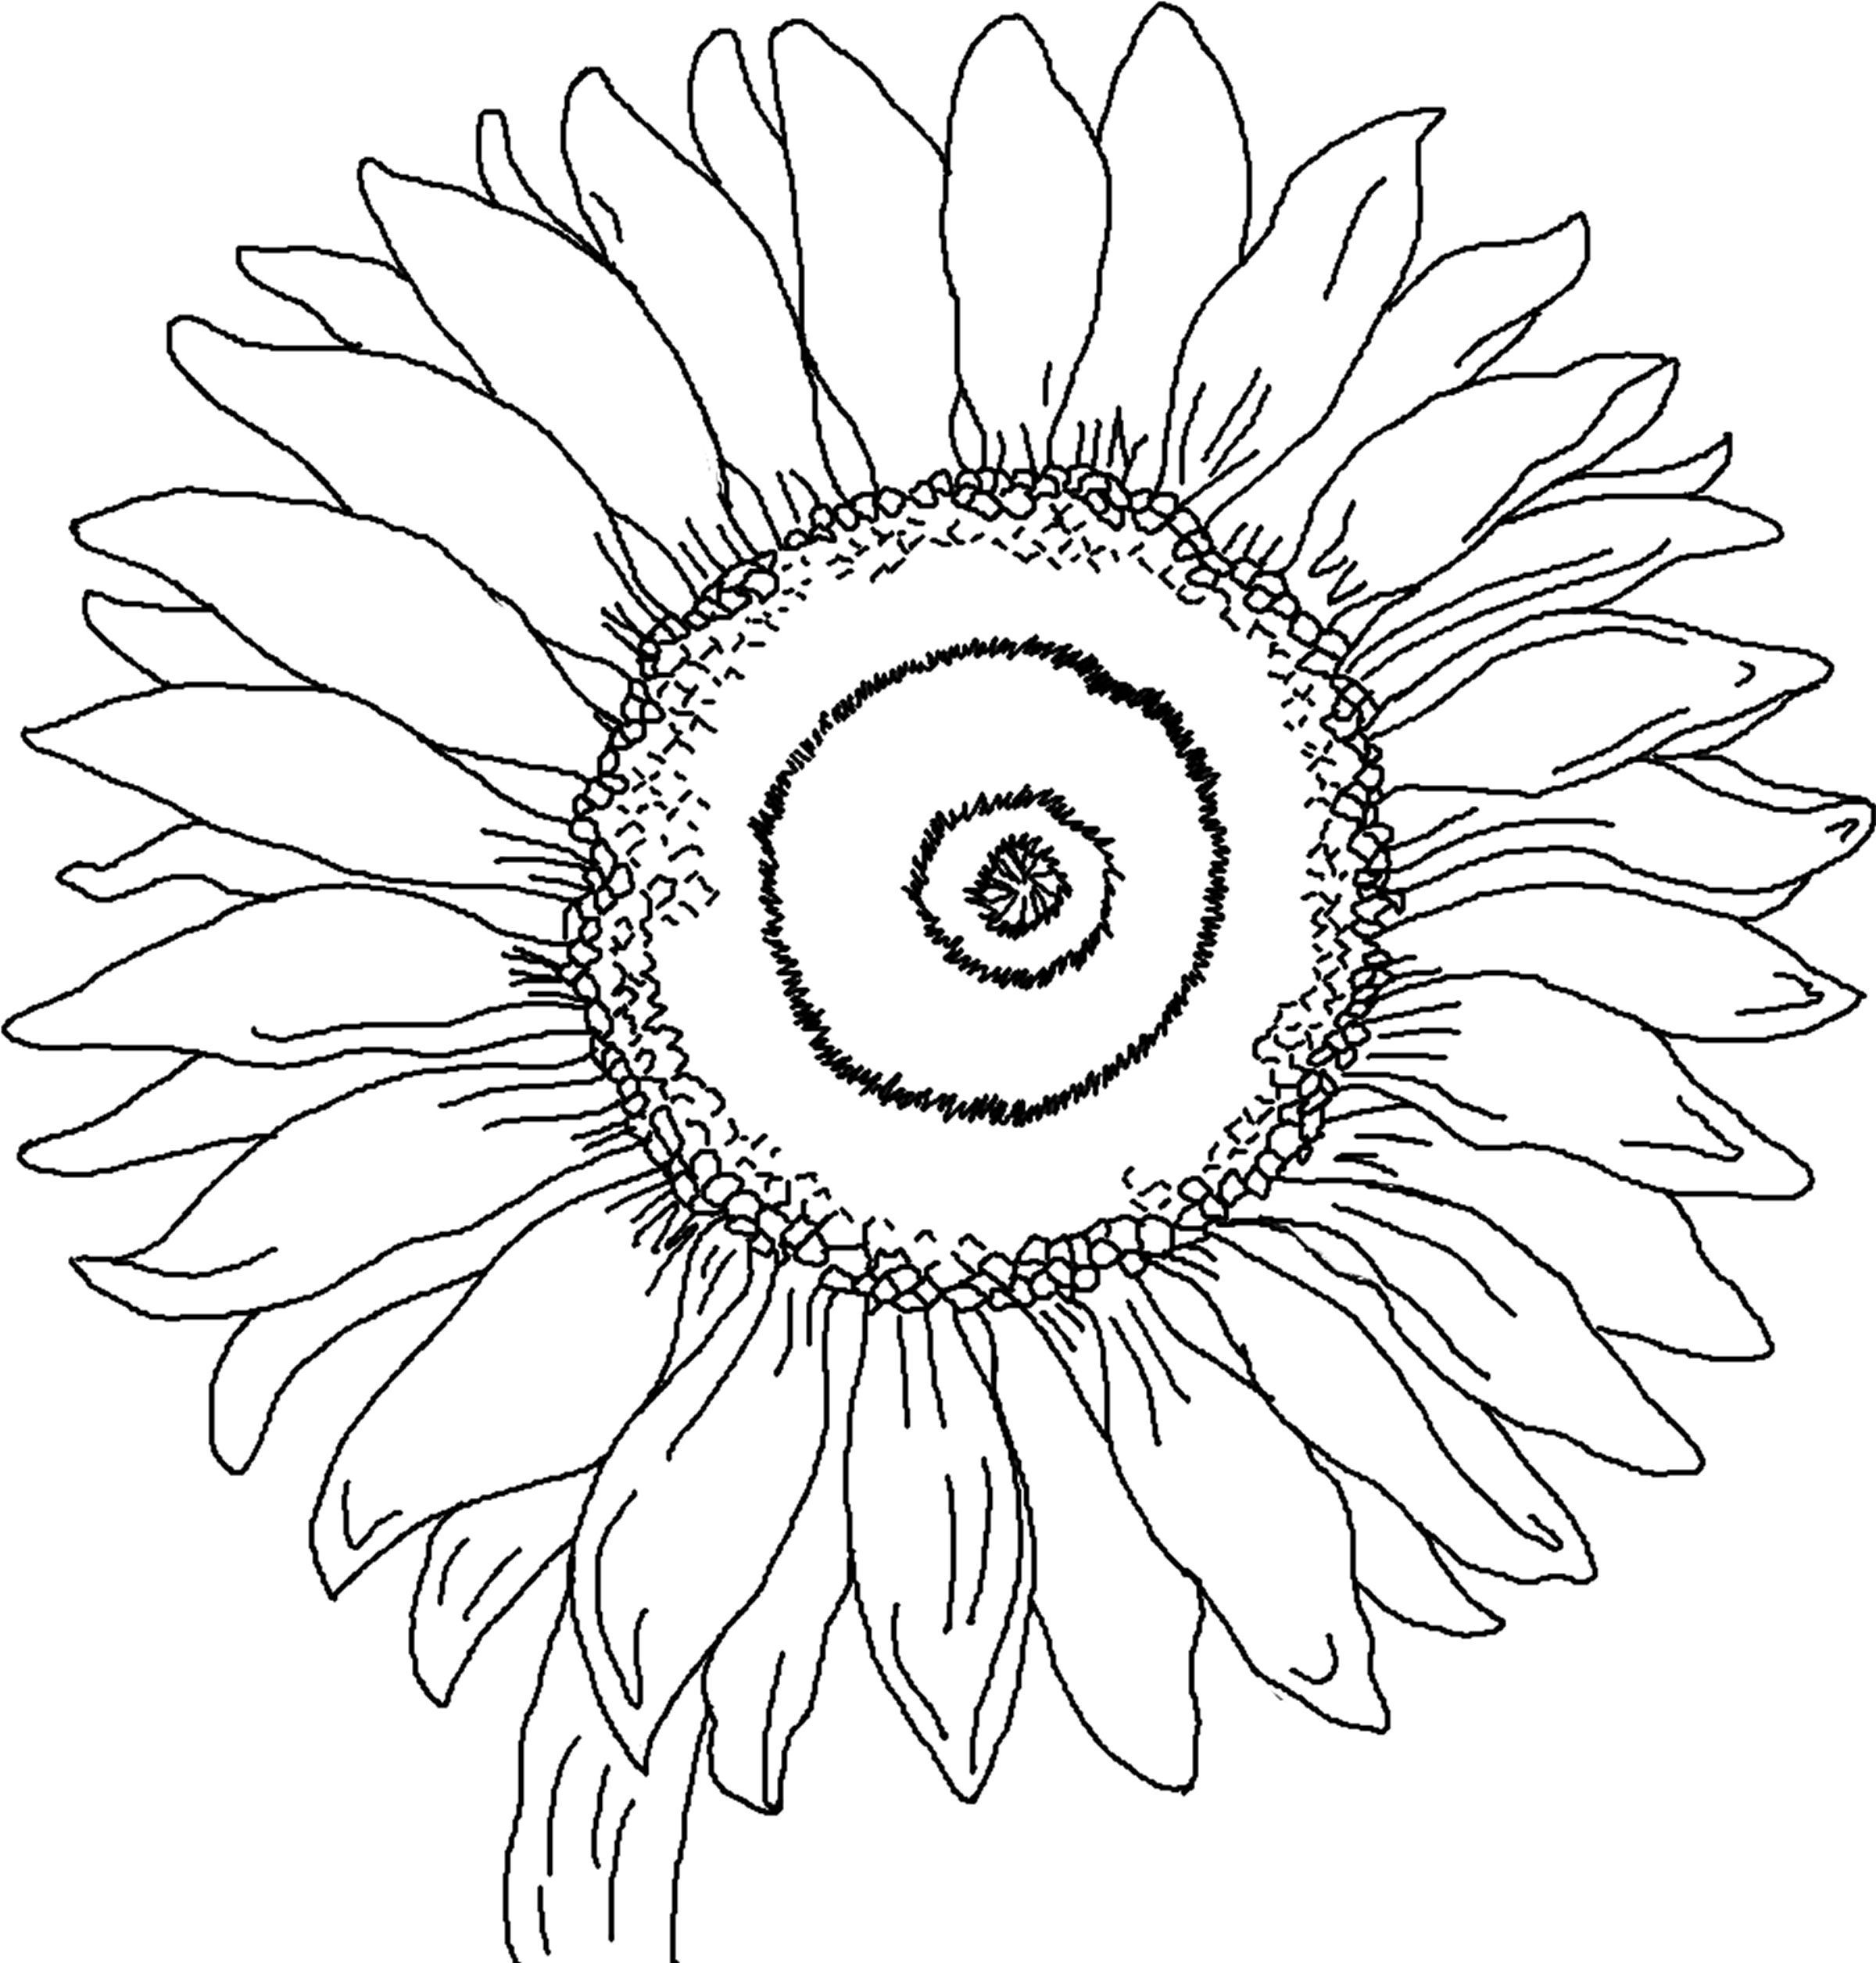 Free Printable Sunflower Coloring Pages For Kids | Pinterest ...